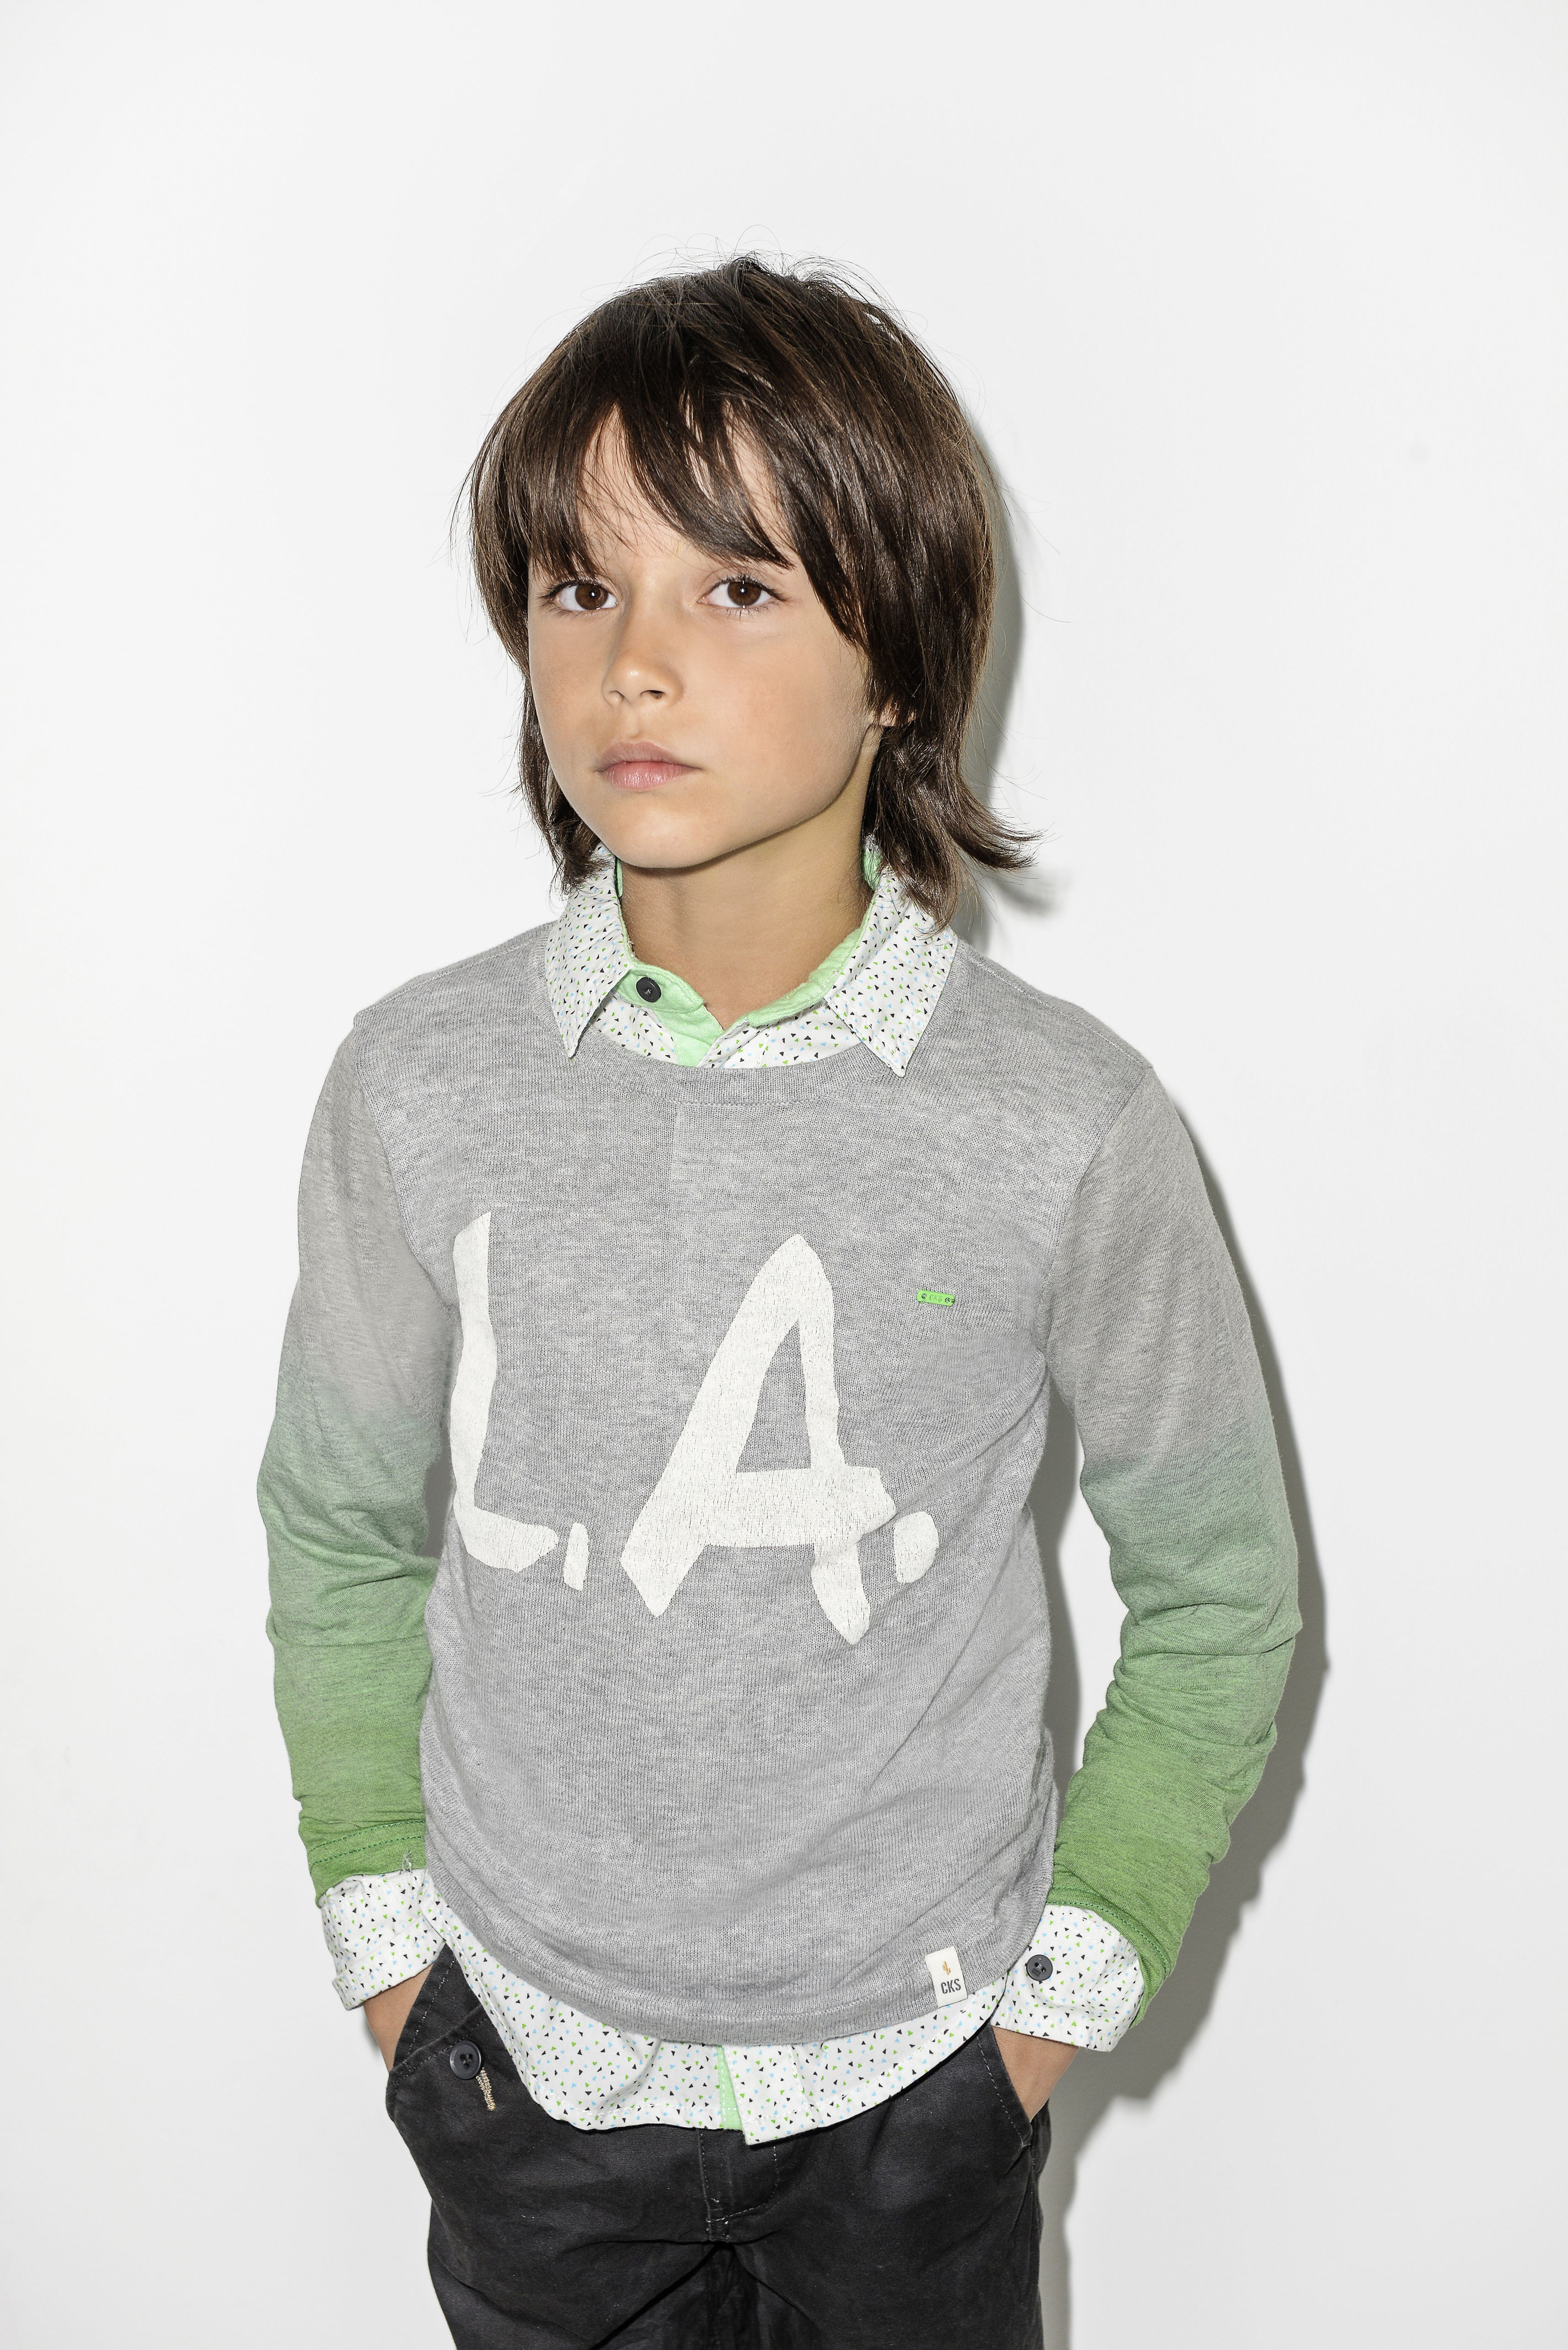 9a3afd67 Boys |www.olliewood.nl ❤ We heart @dimitybourke.com #kidsfashion #kidswear # childrenswear #kids #designer